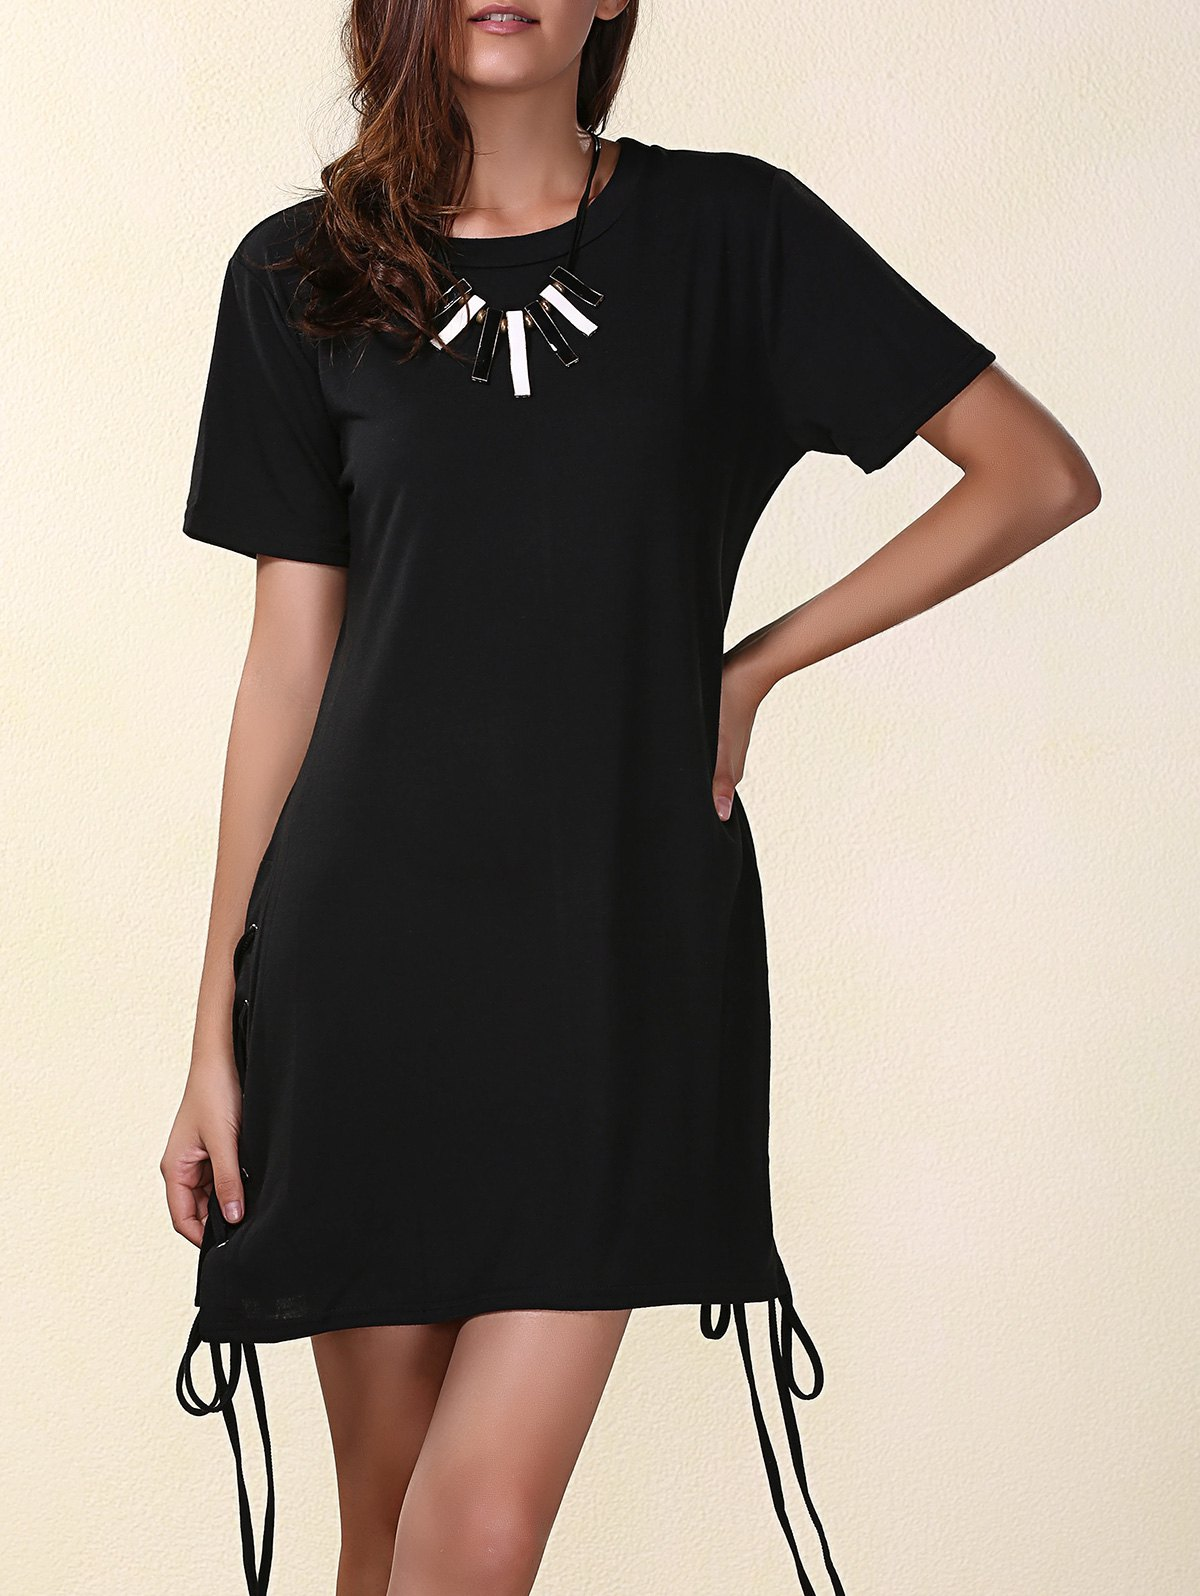 Stylish Round Neck Short Sleeves Strappy Pure Color Women's Dress - BLACK S